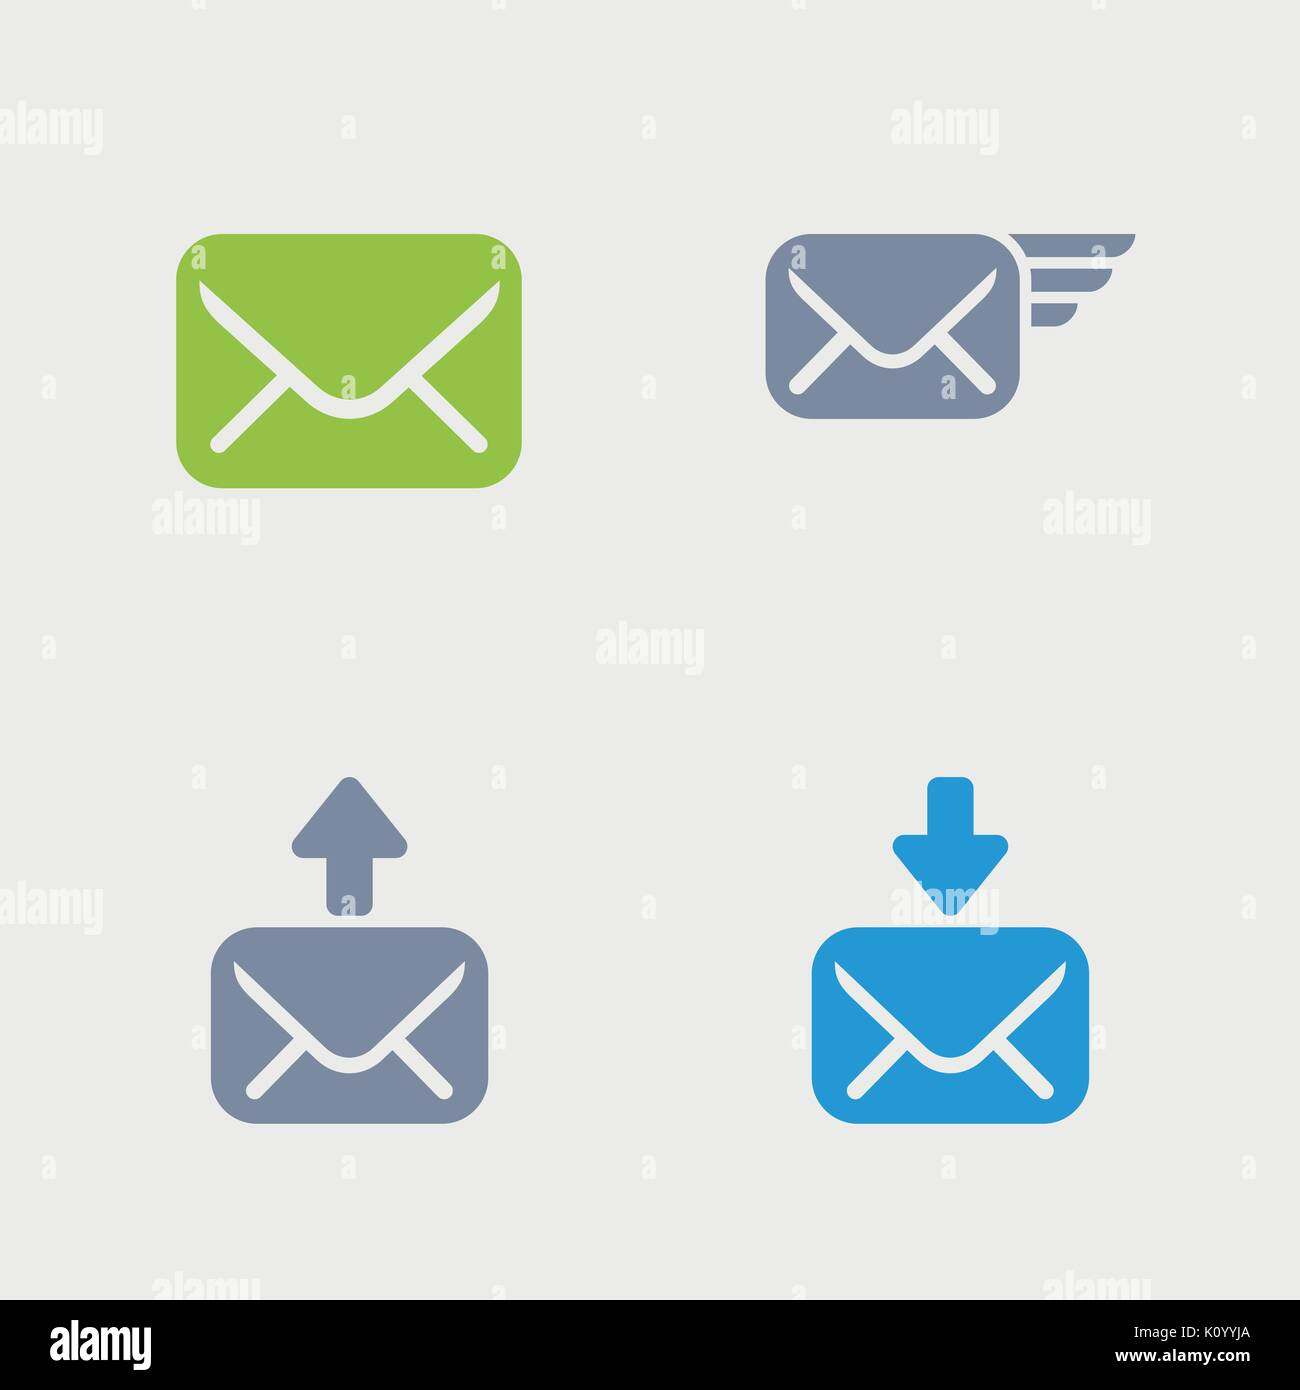 A set of 4 professional, pixel-perfect icons designed on a 32x32 pixel grid. - Stock Image